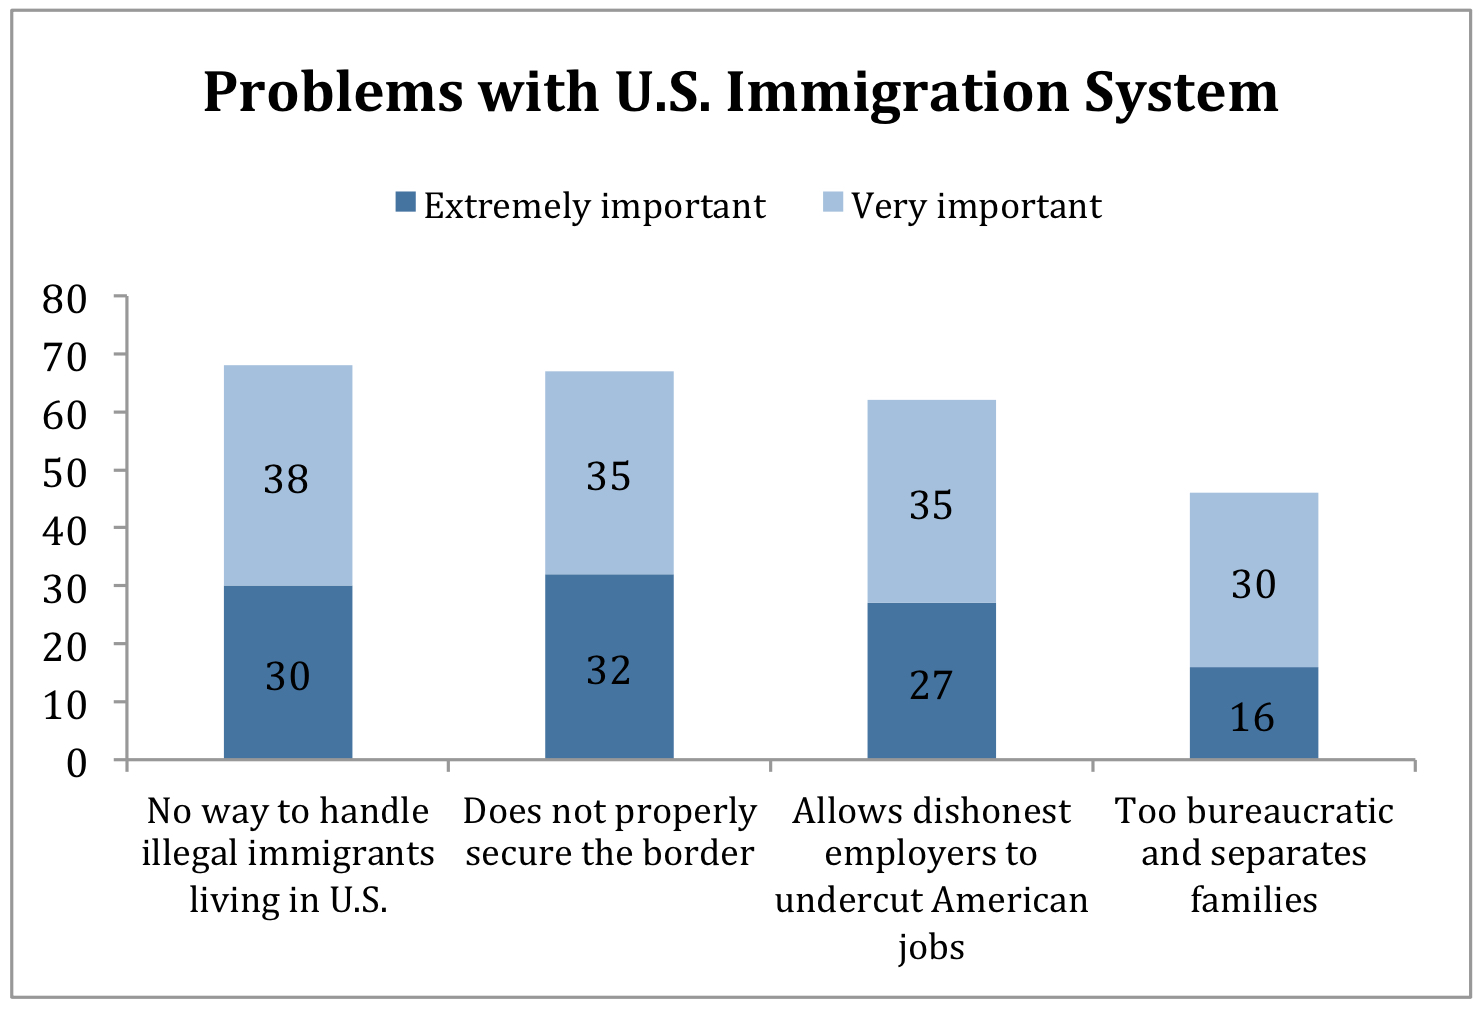 PRRI Religion Values and Immigration_problems with us immigration system